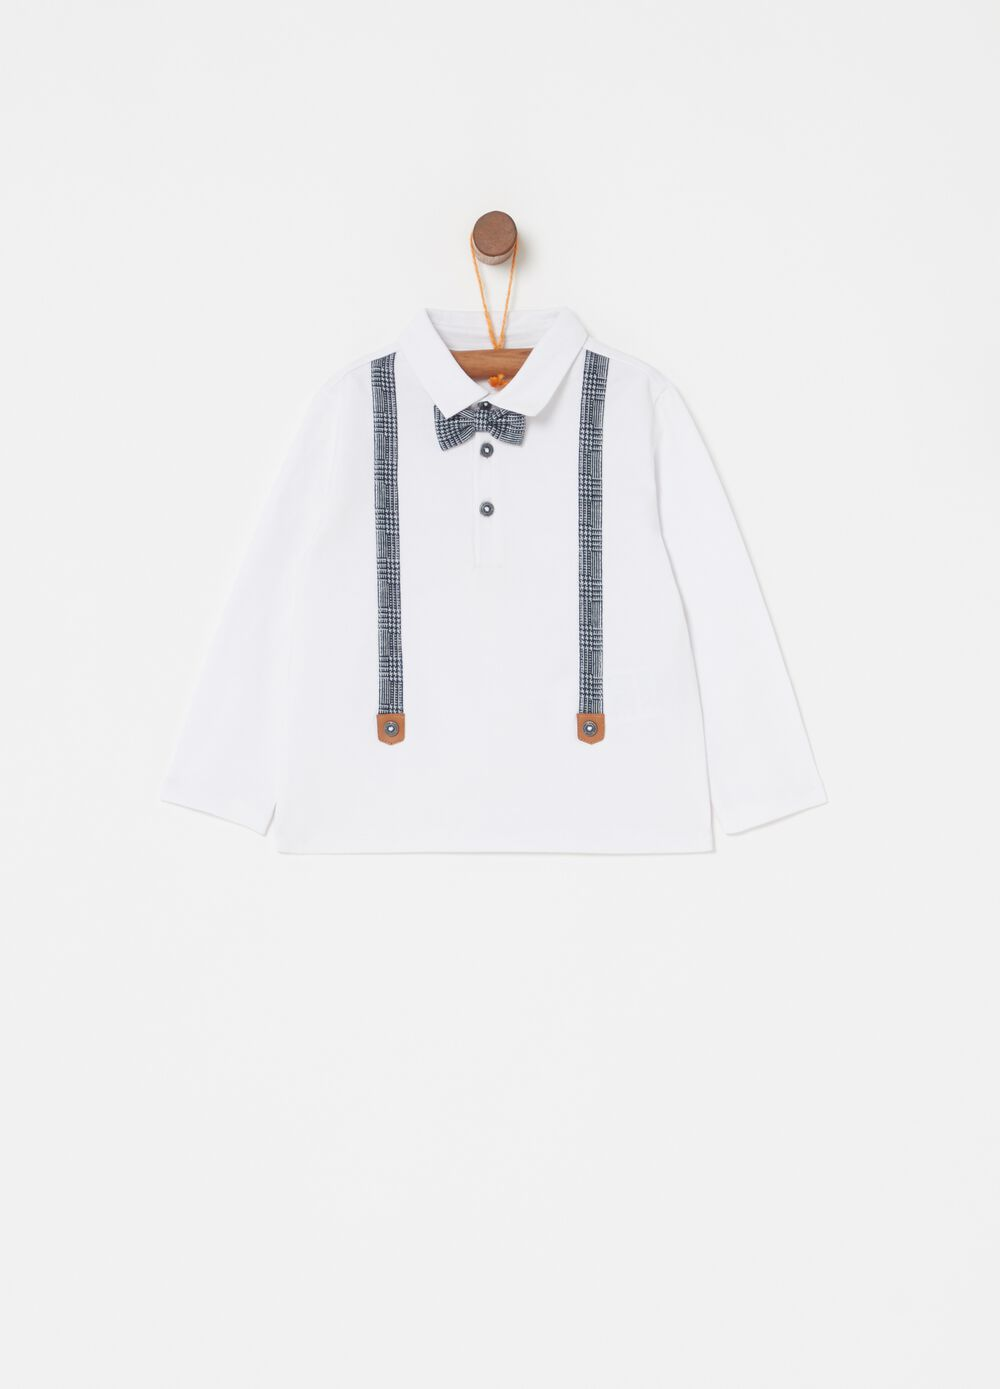 Polo shirt with bow tie and braces insert